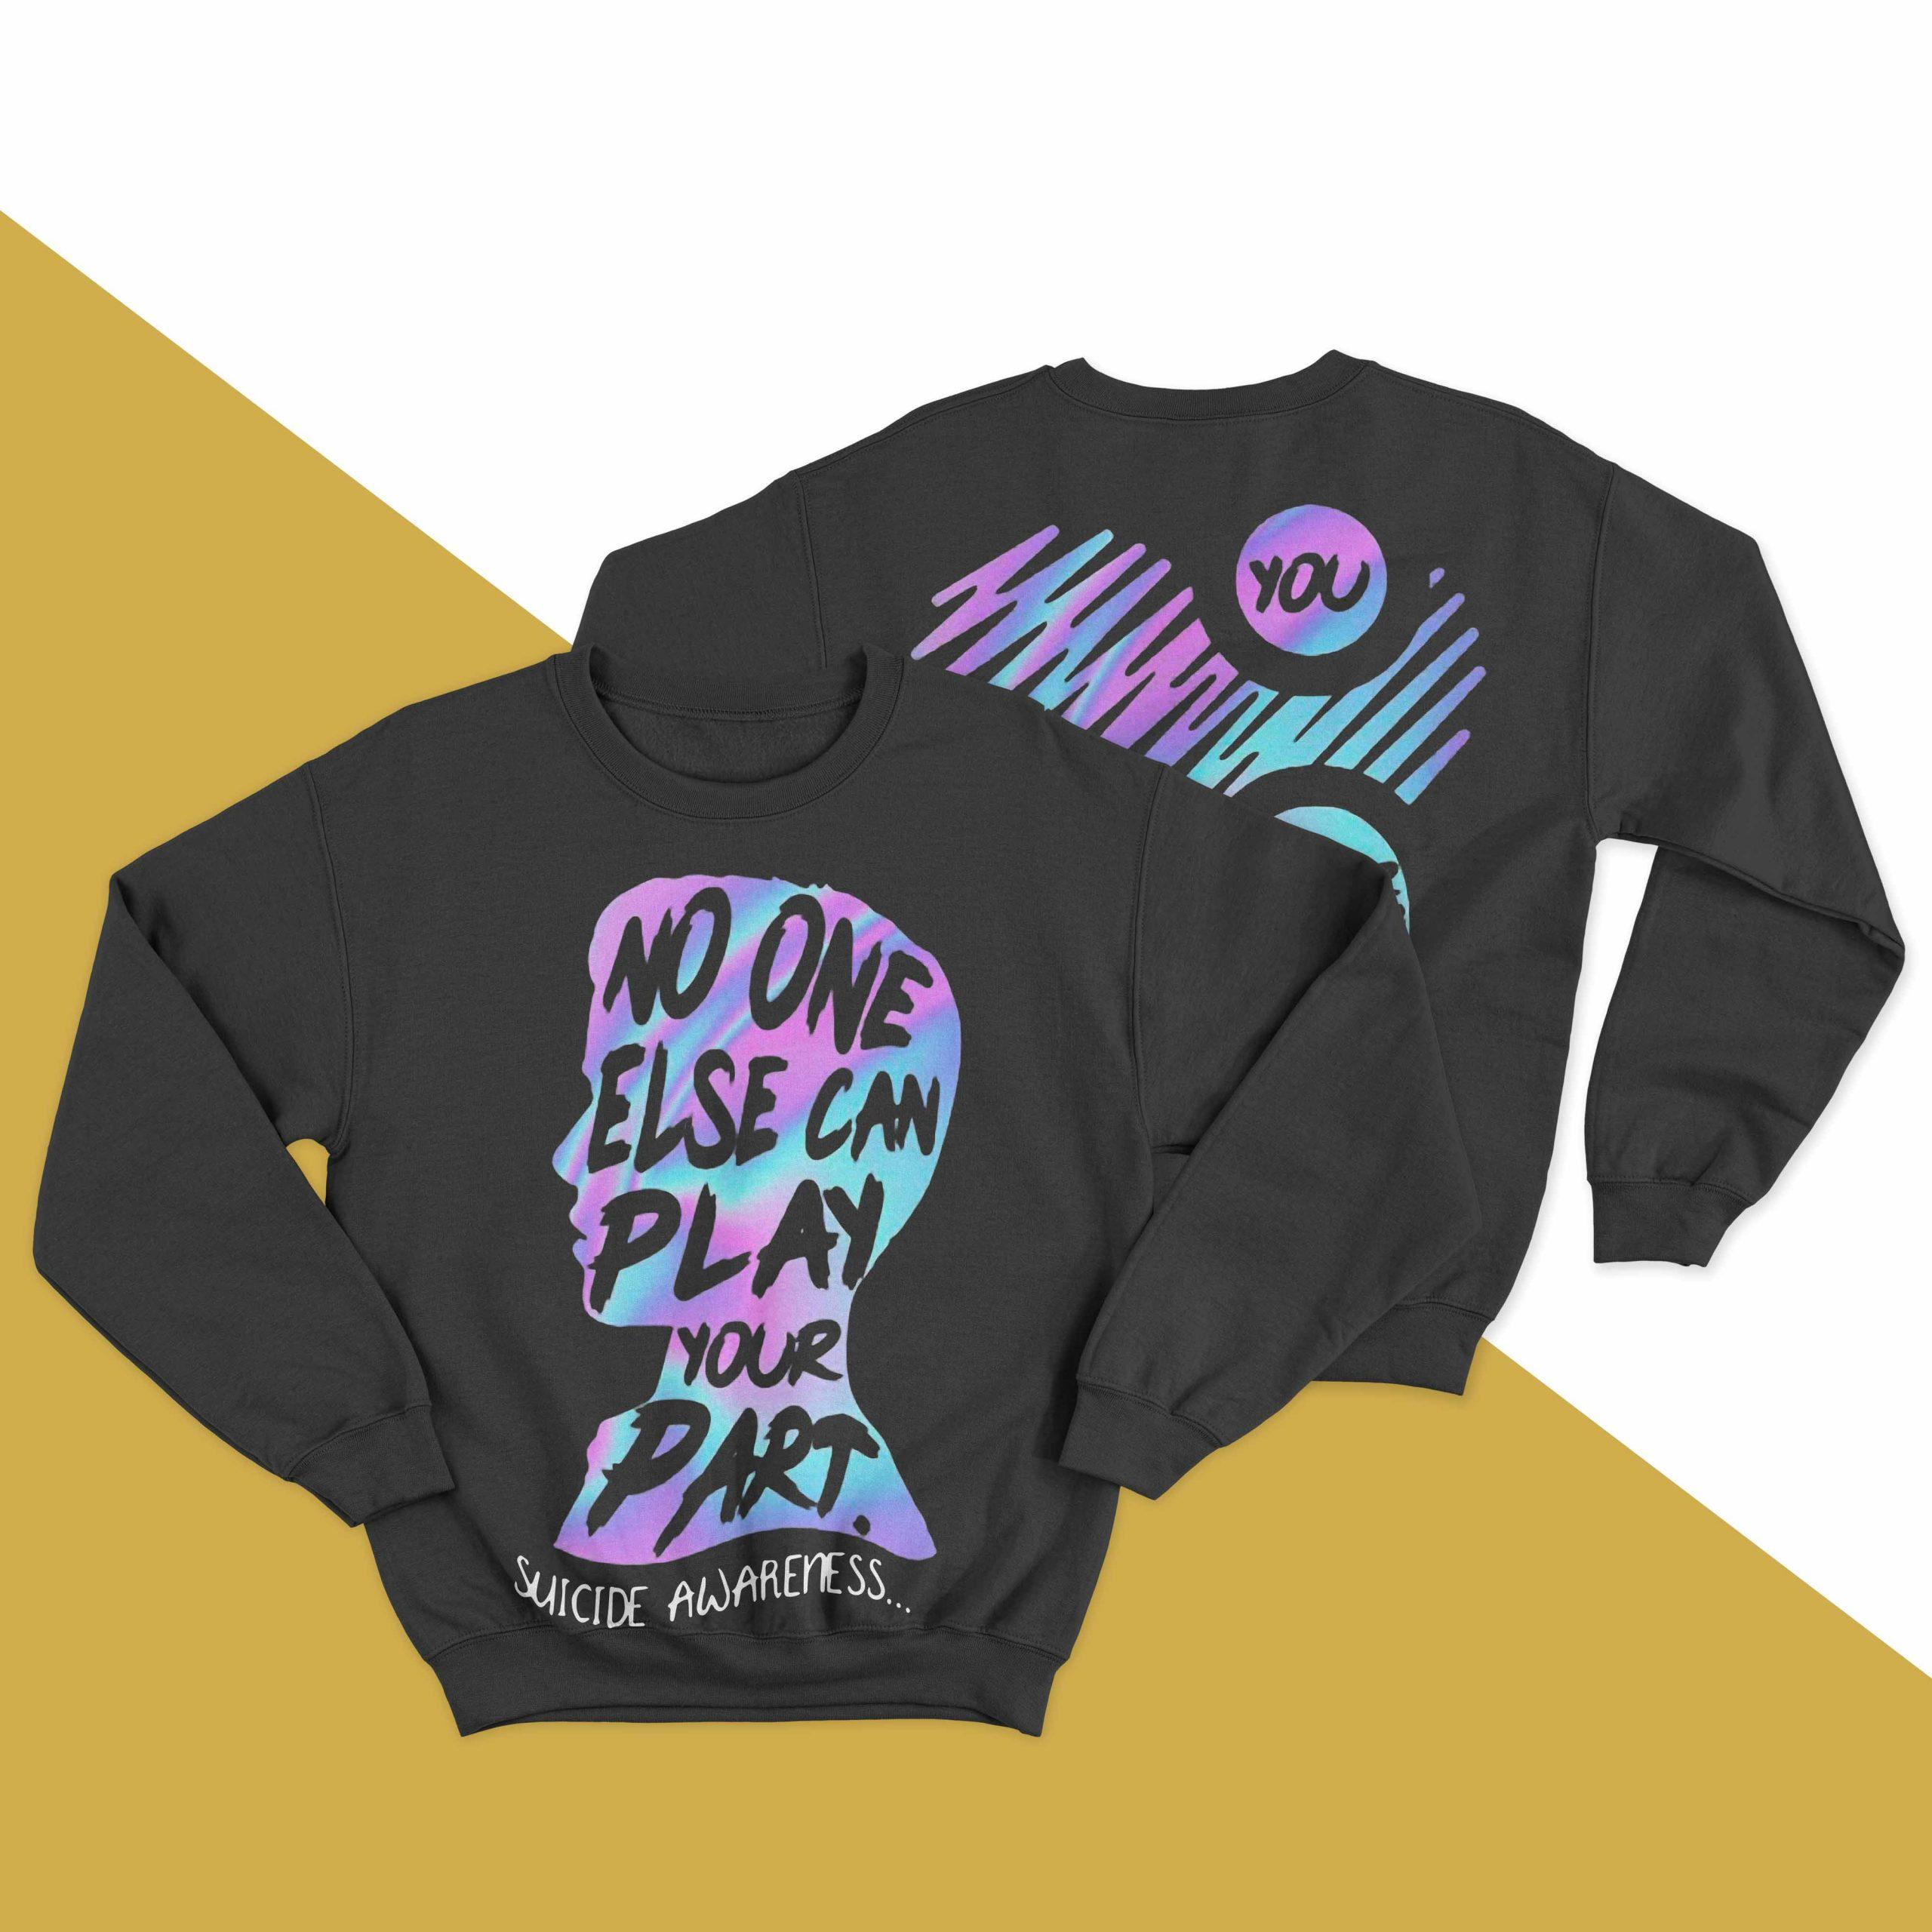 No One Else Can Play Your Part Suicide Awareness Sweater